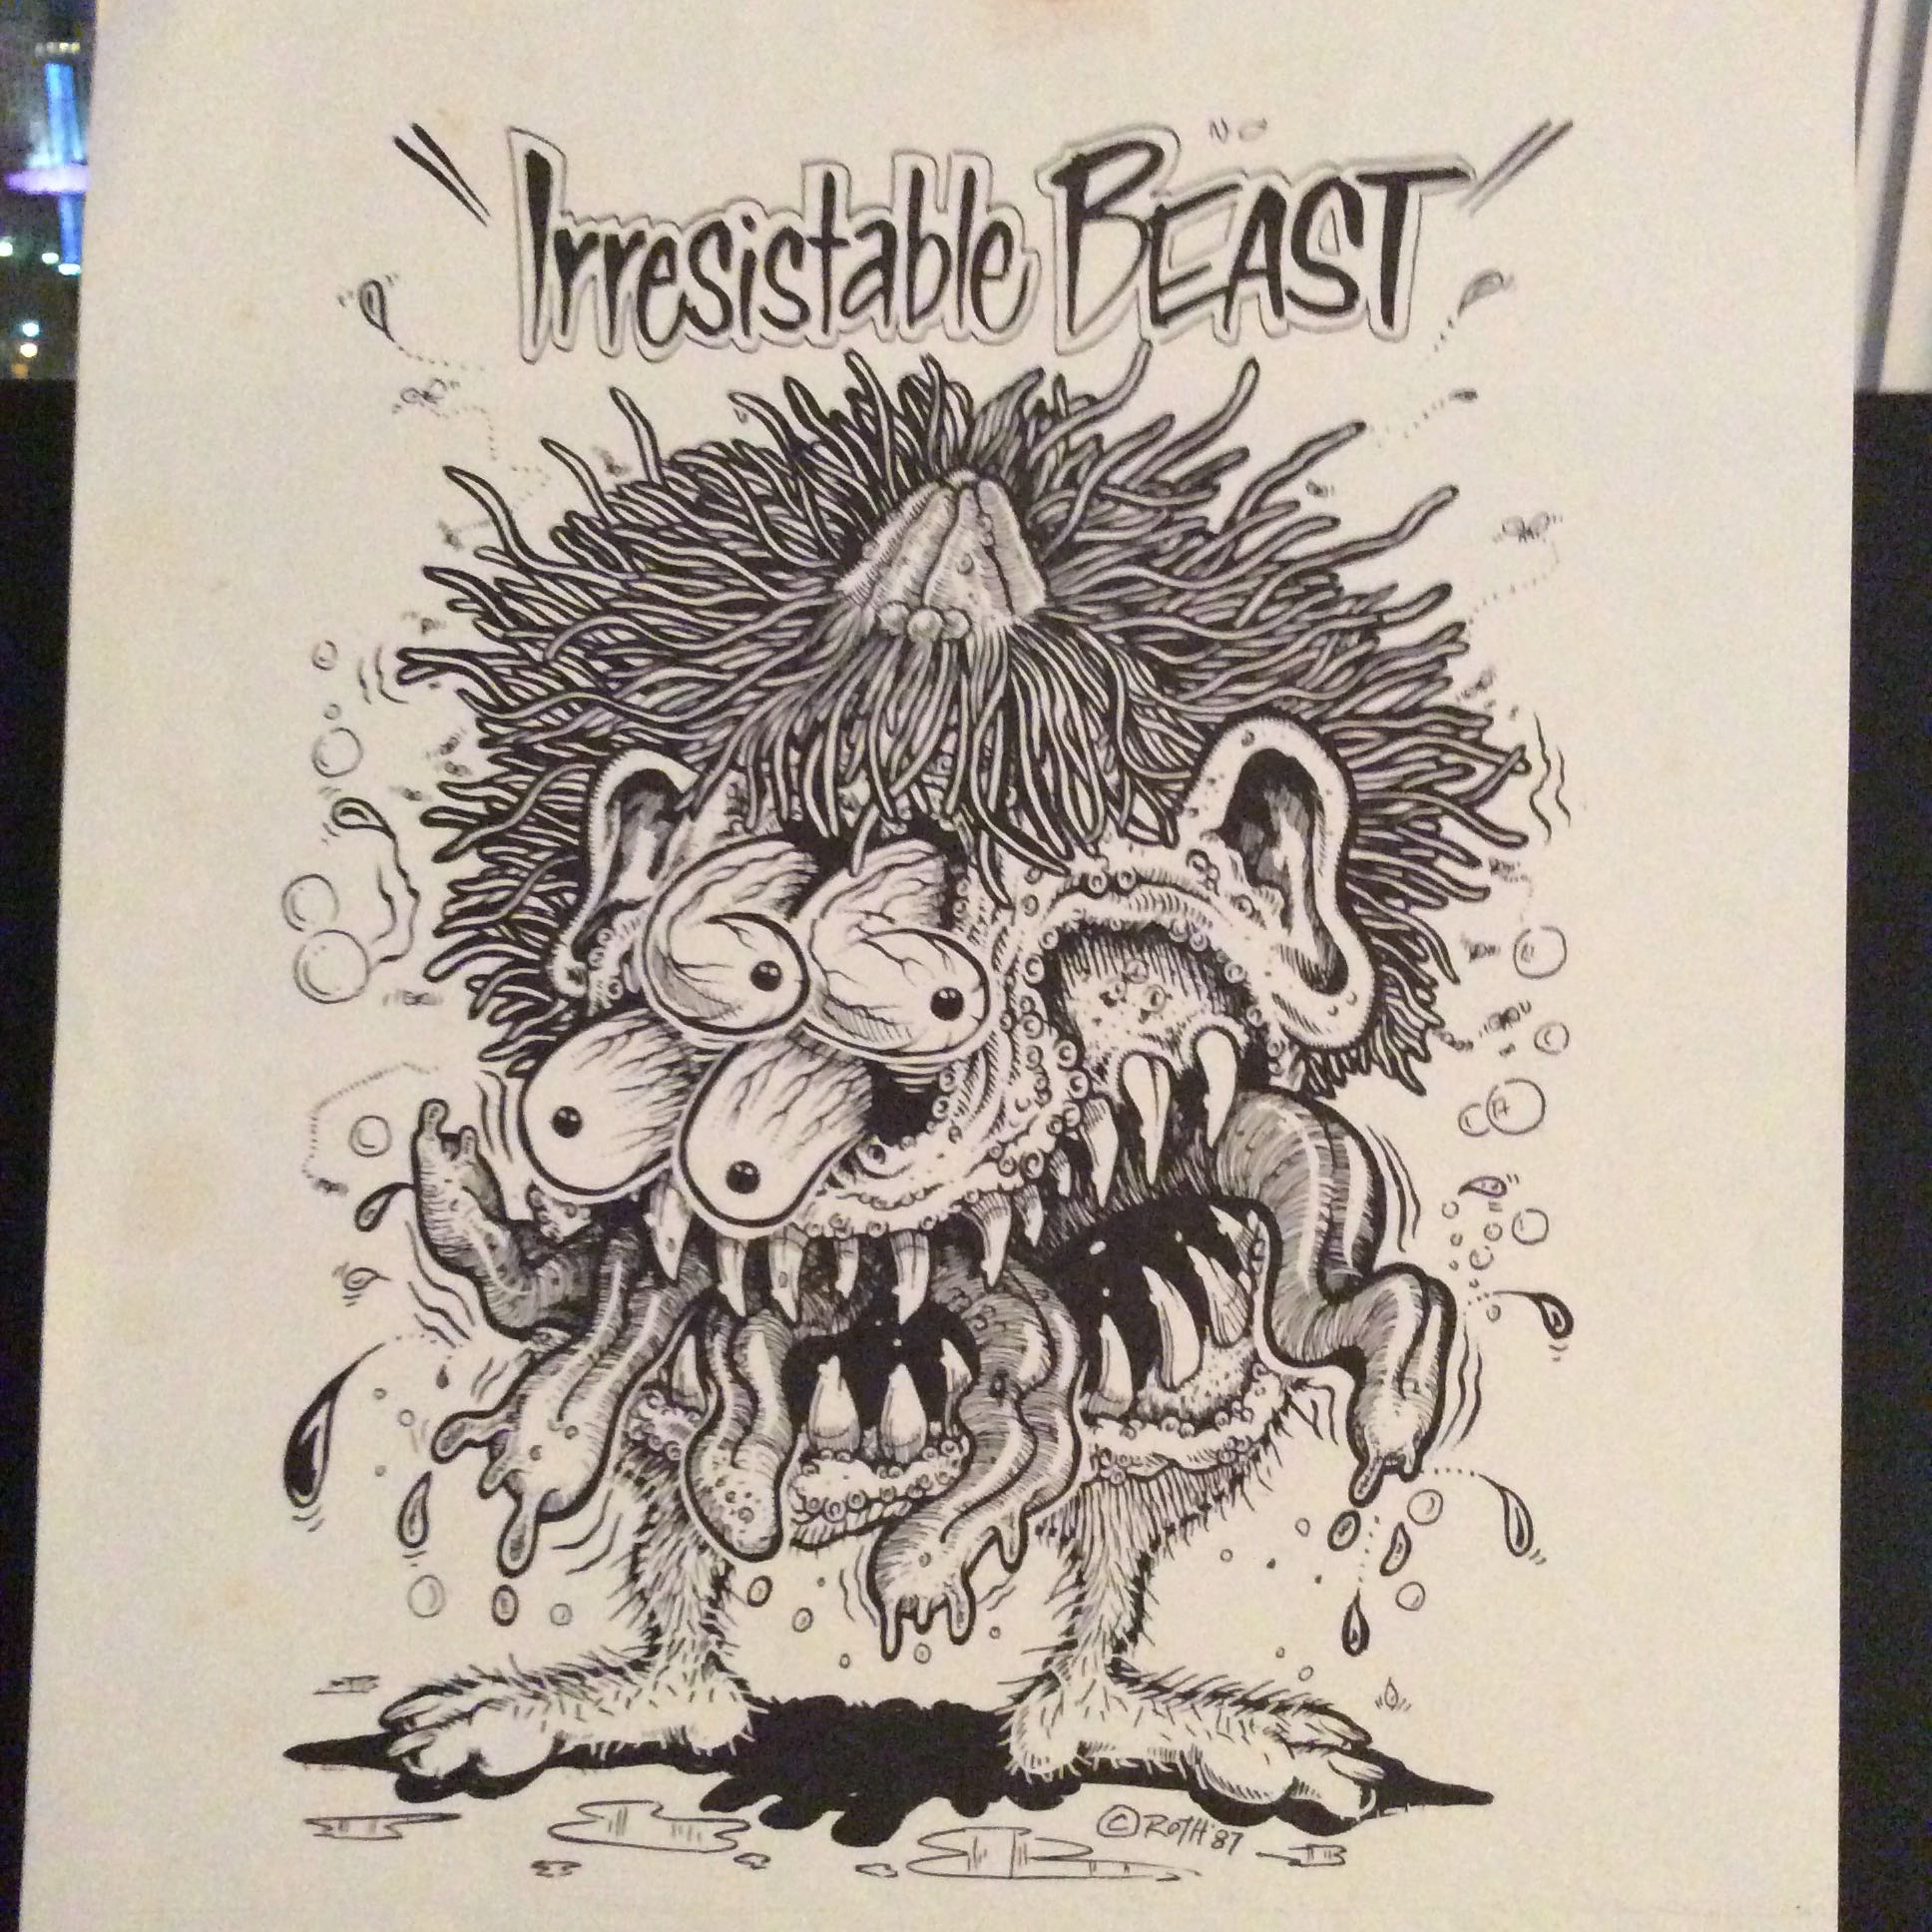 Ed Big Daddy Roth would have an artist create a drawing like this for Jean Jacques Bastarache to paint.